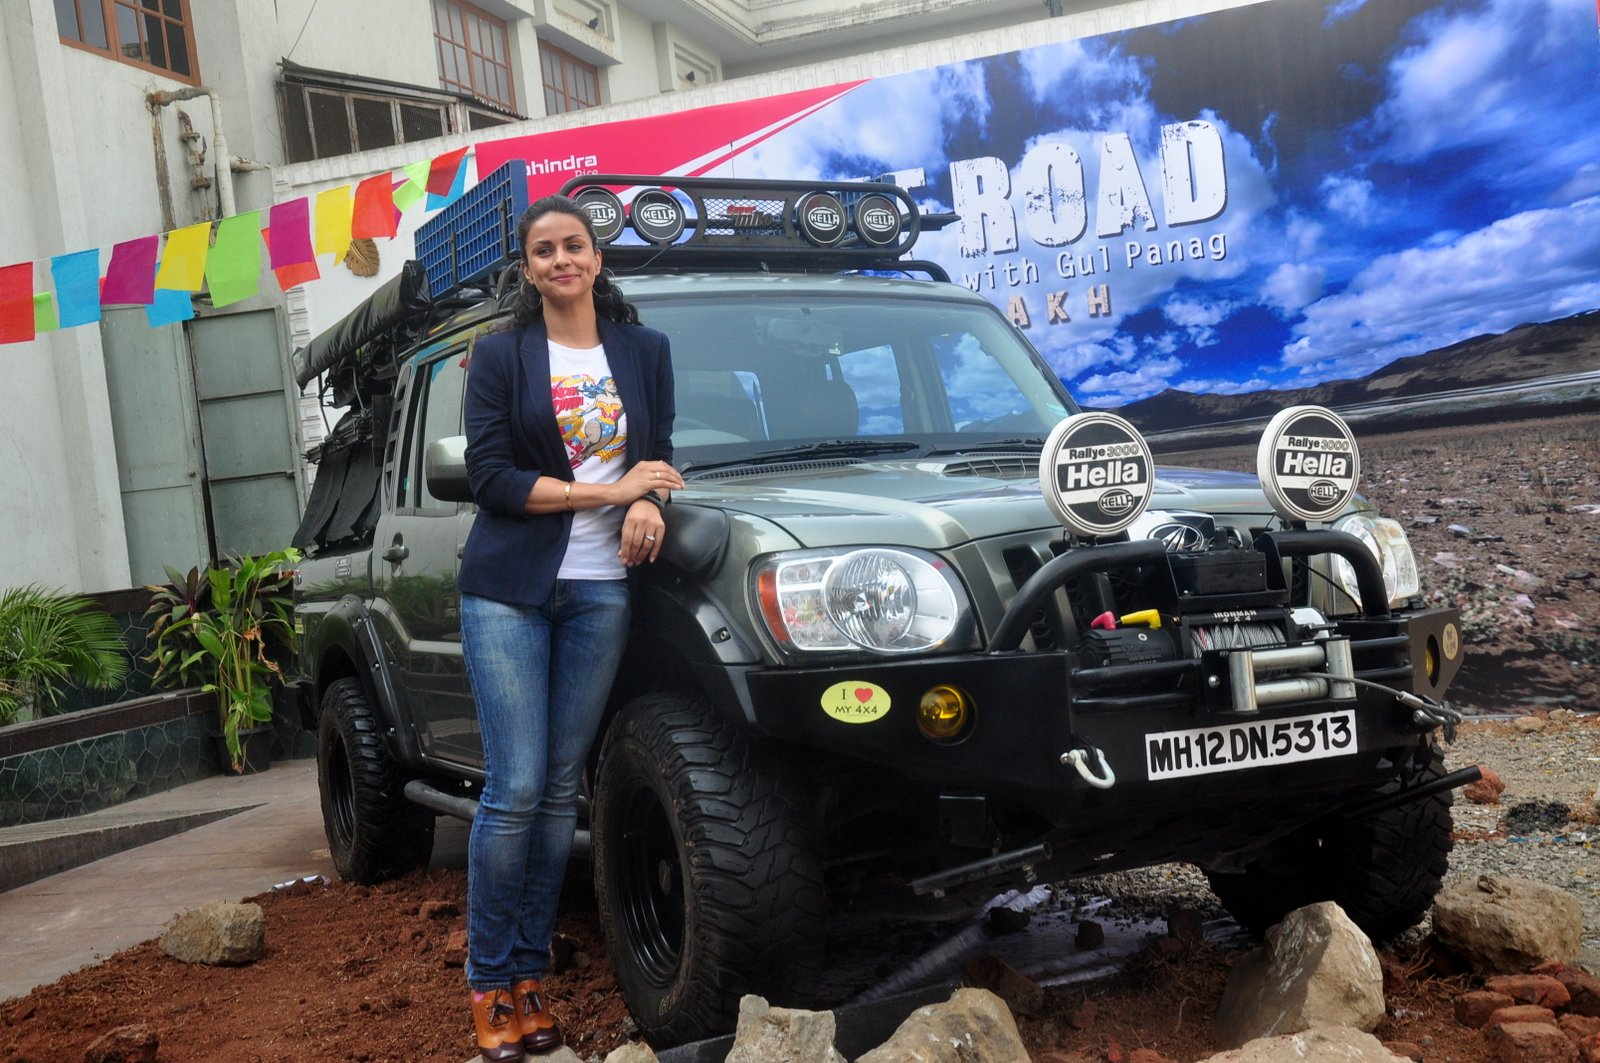 Gul Panag Launcg New Show Off Road with Gul Panag : Ladakh in Mumbai